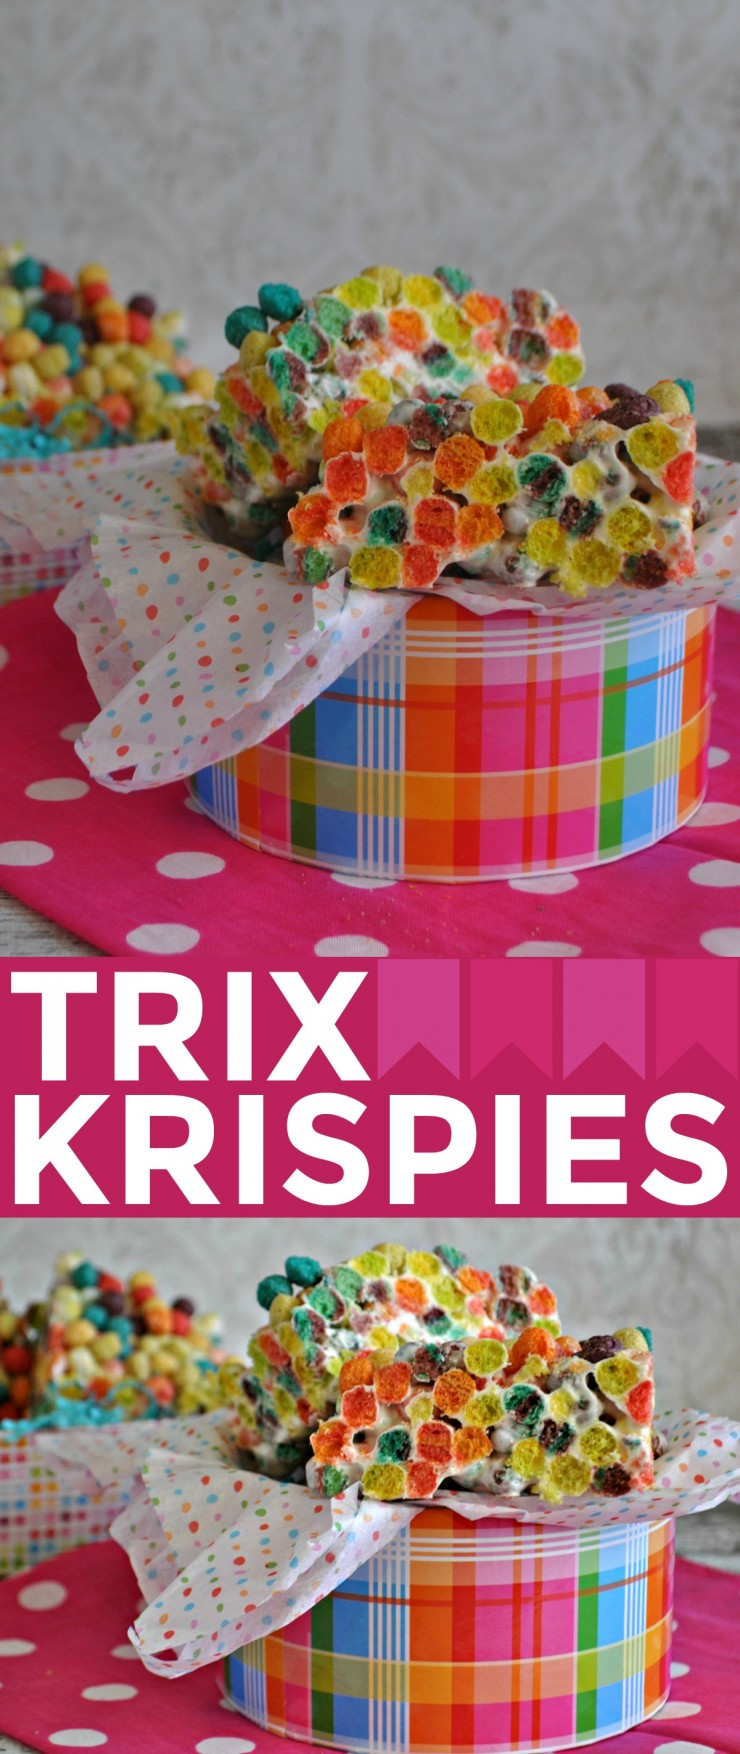 This Trix Krispies Recipe results in  fun and vibrant cereal treat bars that are full of flavours kids are sure to enjoy! Fun Easter Dessert idea!